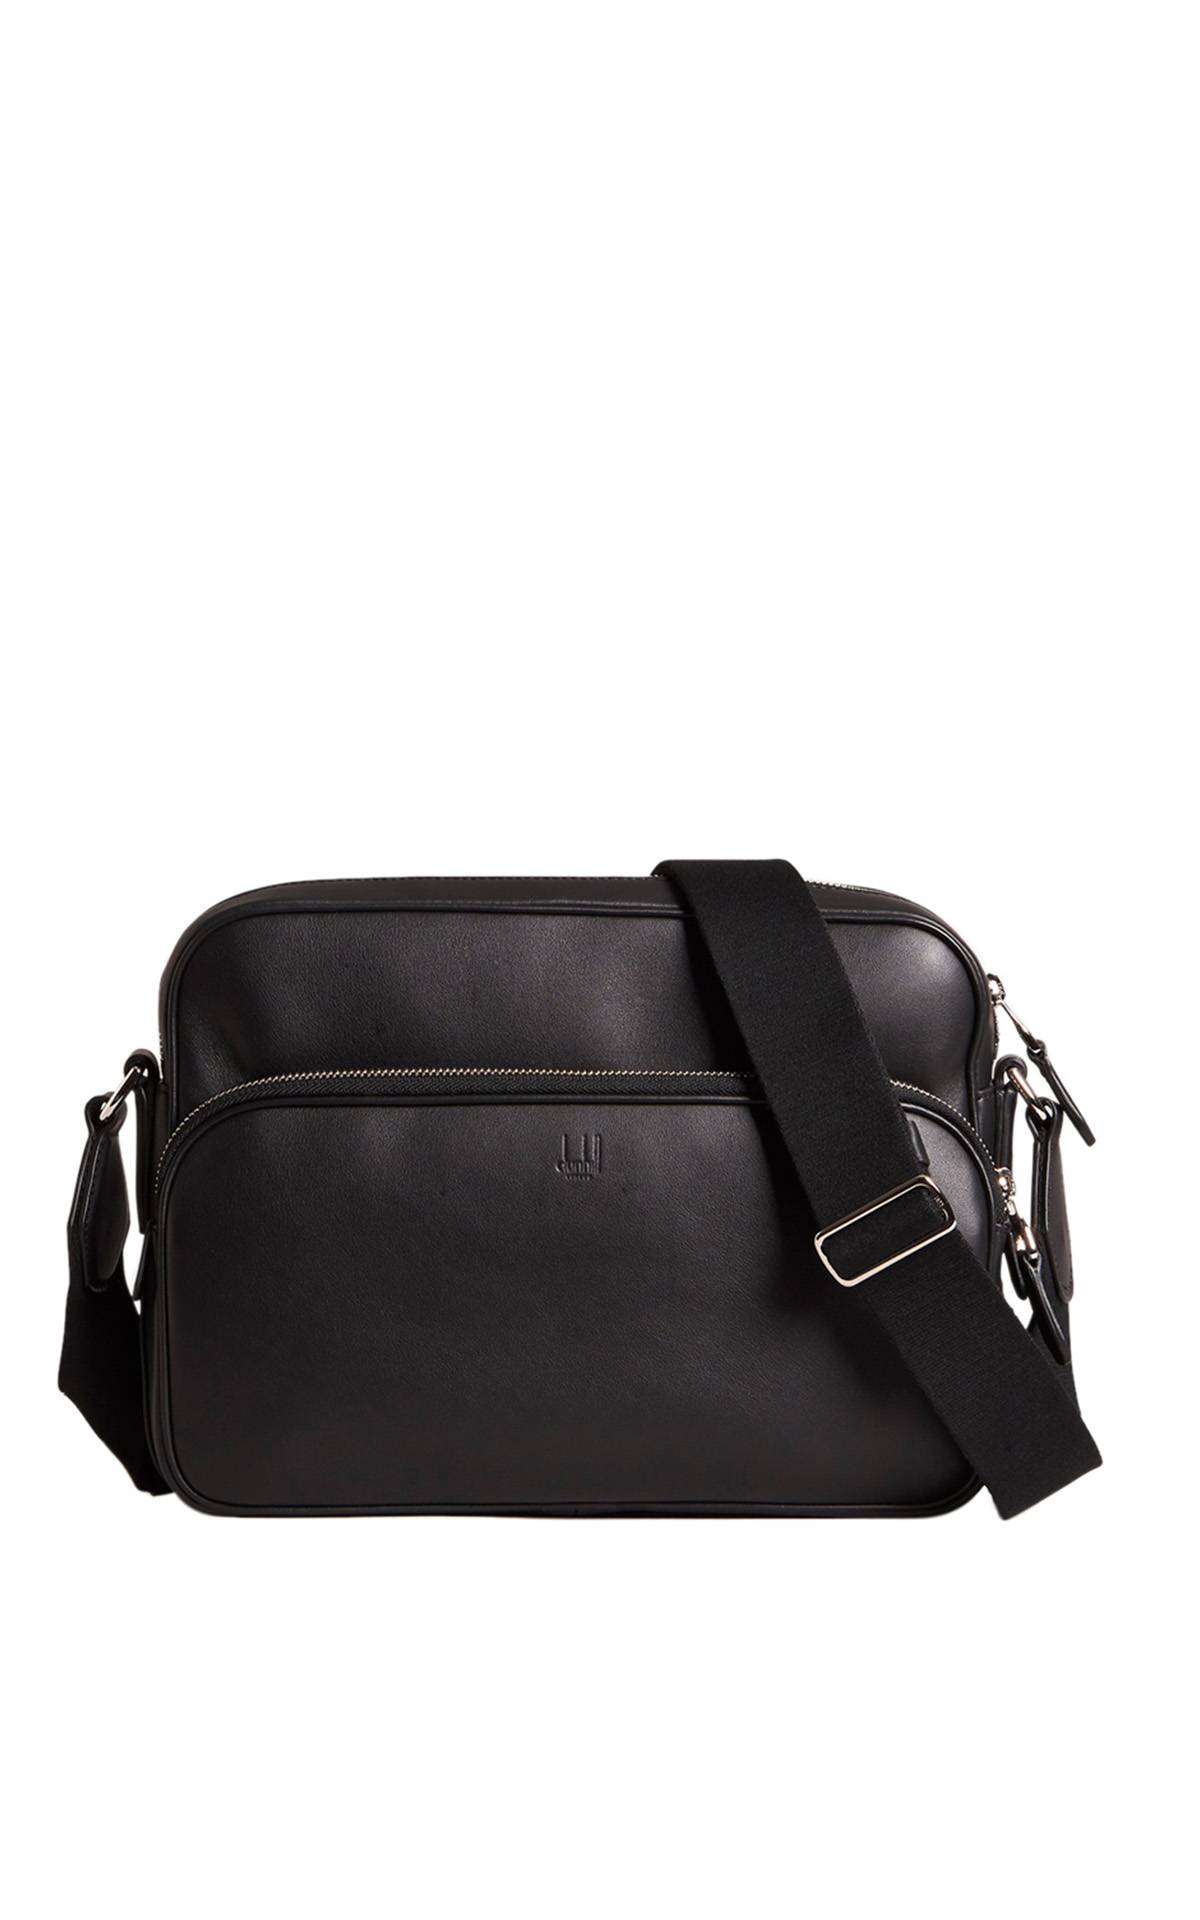 dunhill  City messenger bag from Bicester Village